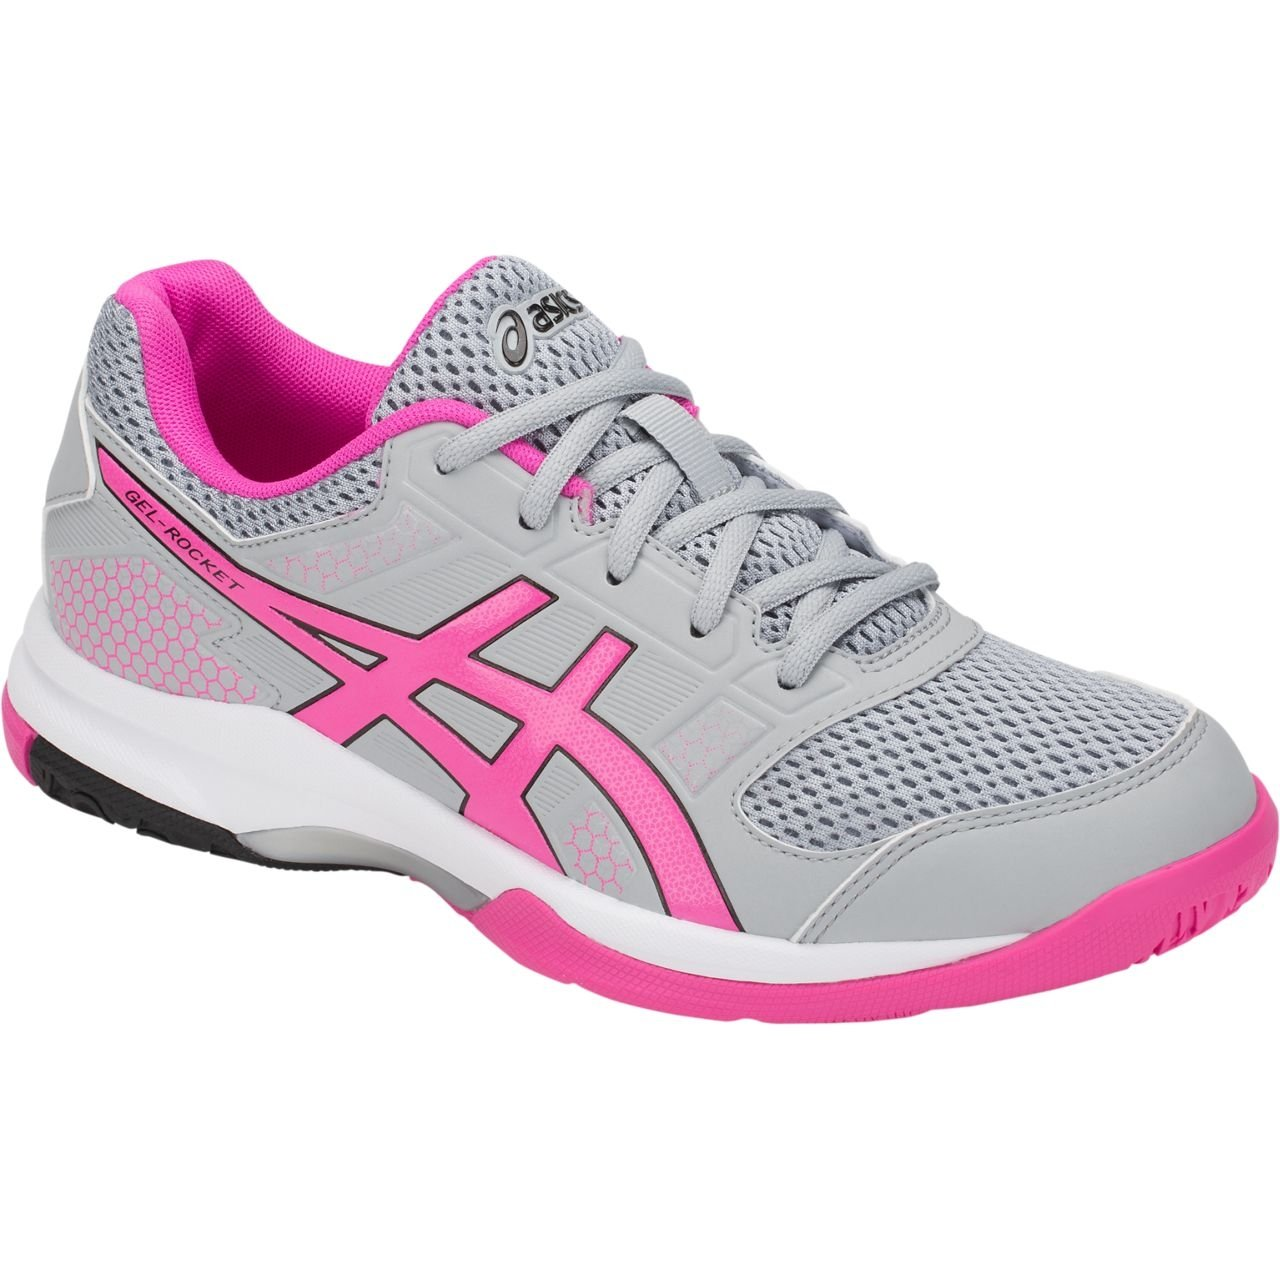 ASICS Women's Gel-Rocket 8 Volleyball Shoe B0788863G7 9.5 B(M) US|Mid Grey/Pink Glo